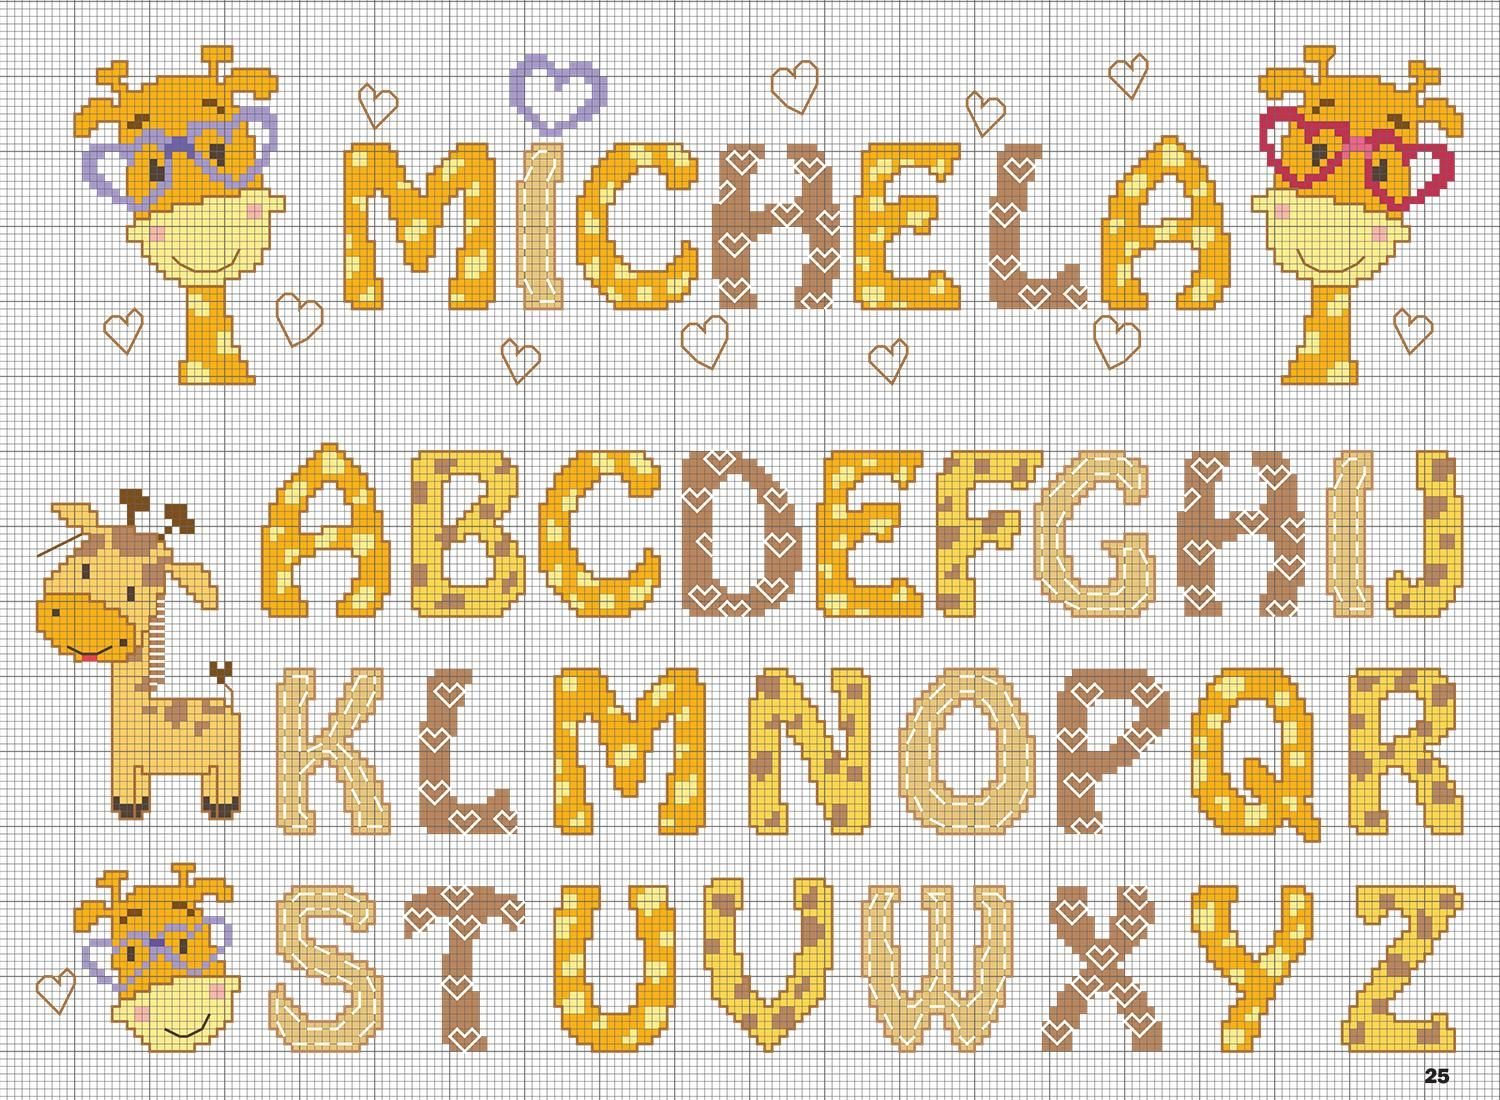 Mpc 51 speciale asilo c8mpc51 cross stitch stitch and for Lettere a punto croce schemi